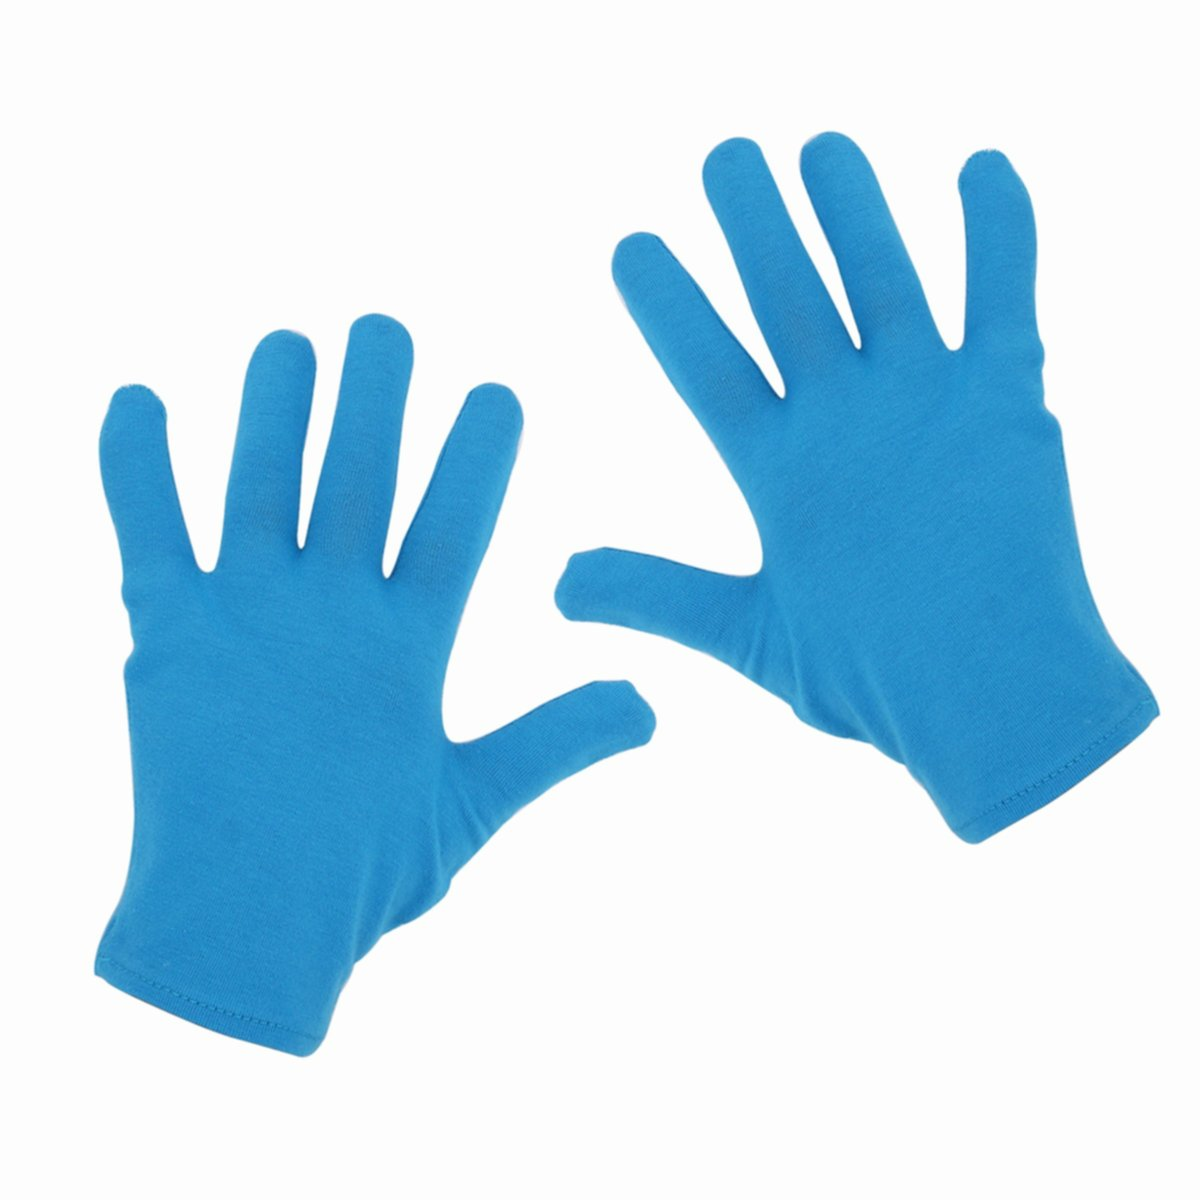 Zcoins 4 Pairs Moisturizing Gloves Socks Moisture Enhancing Purpose for Dry Cracked Hands and Feet (4 Pairs gloves only-Blue)